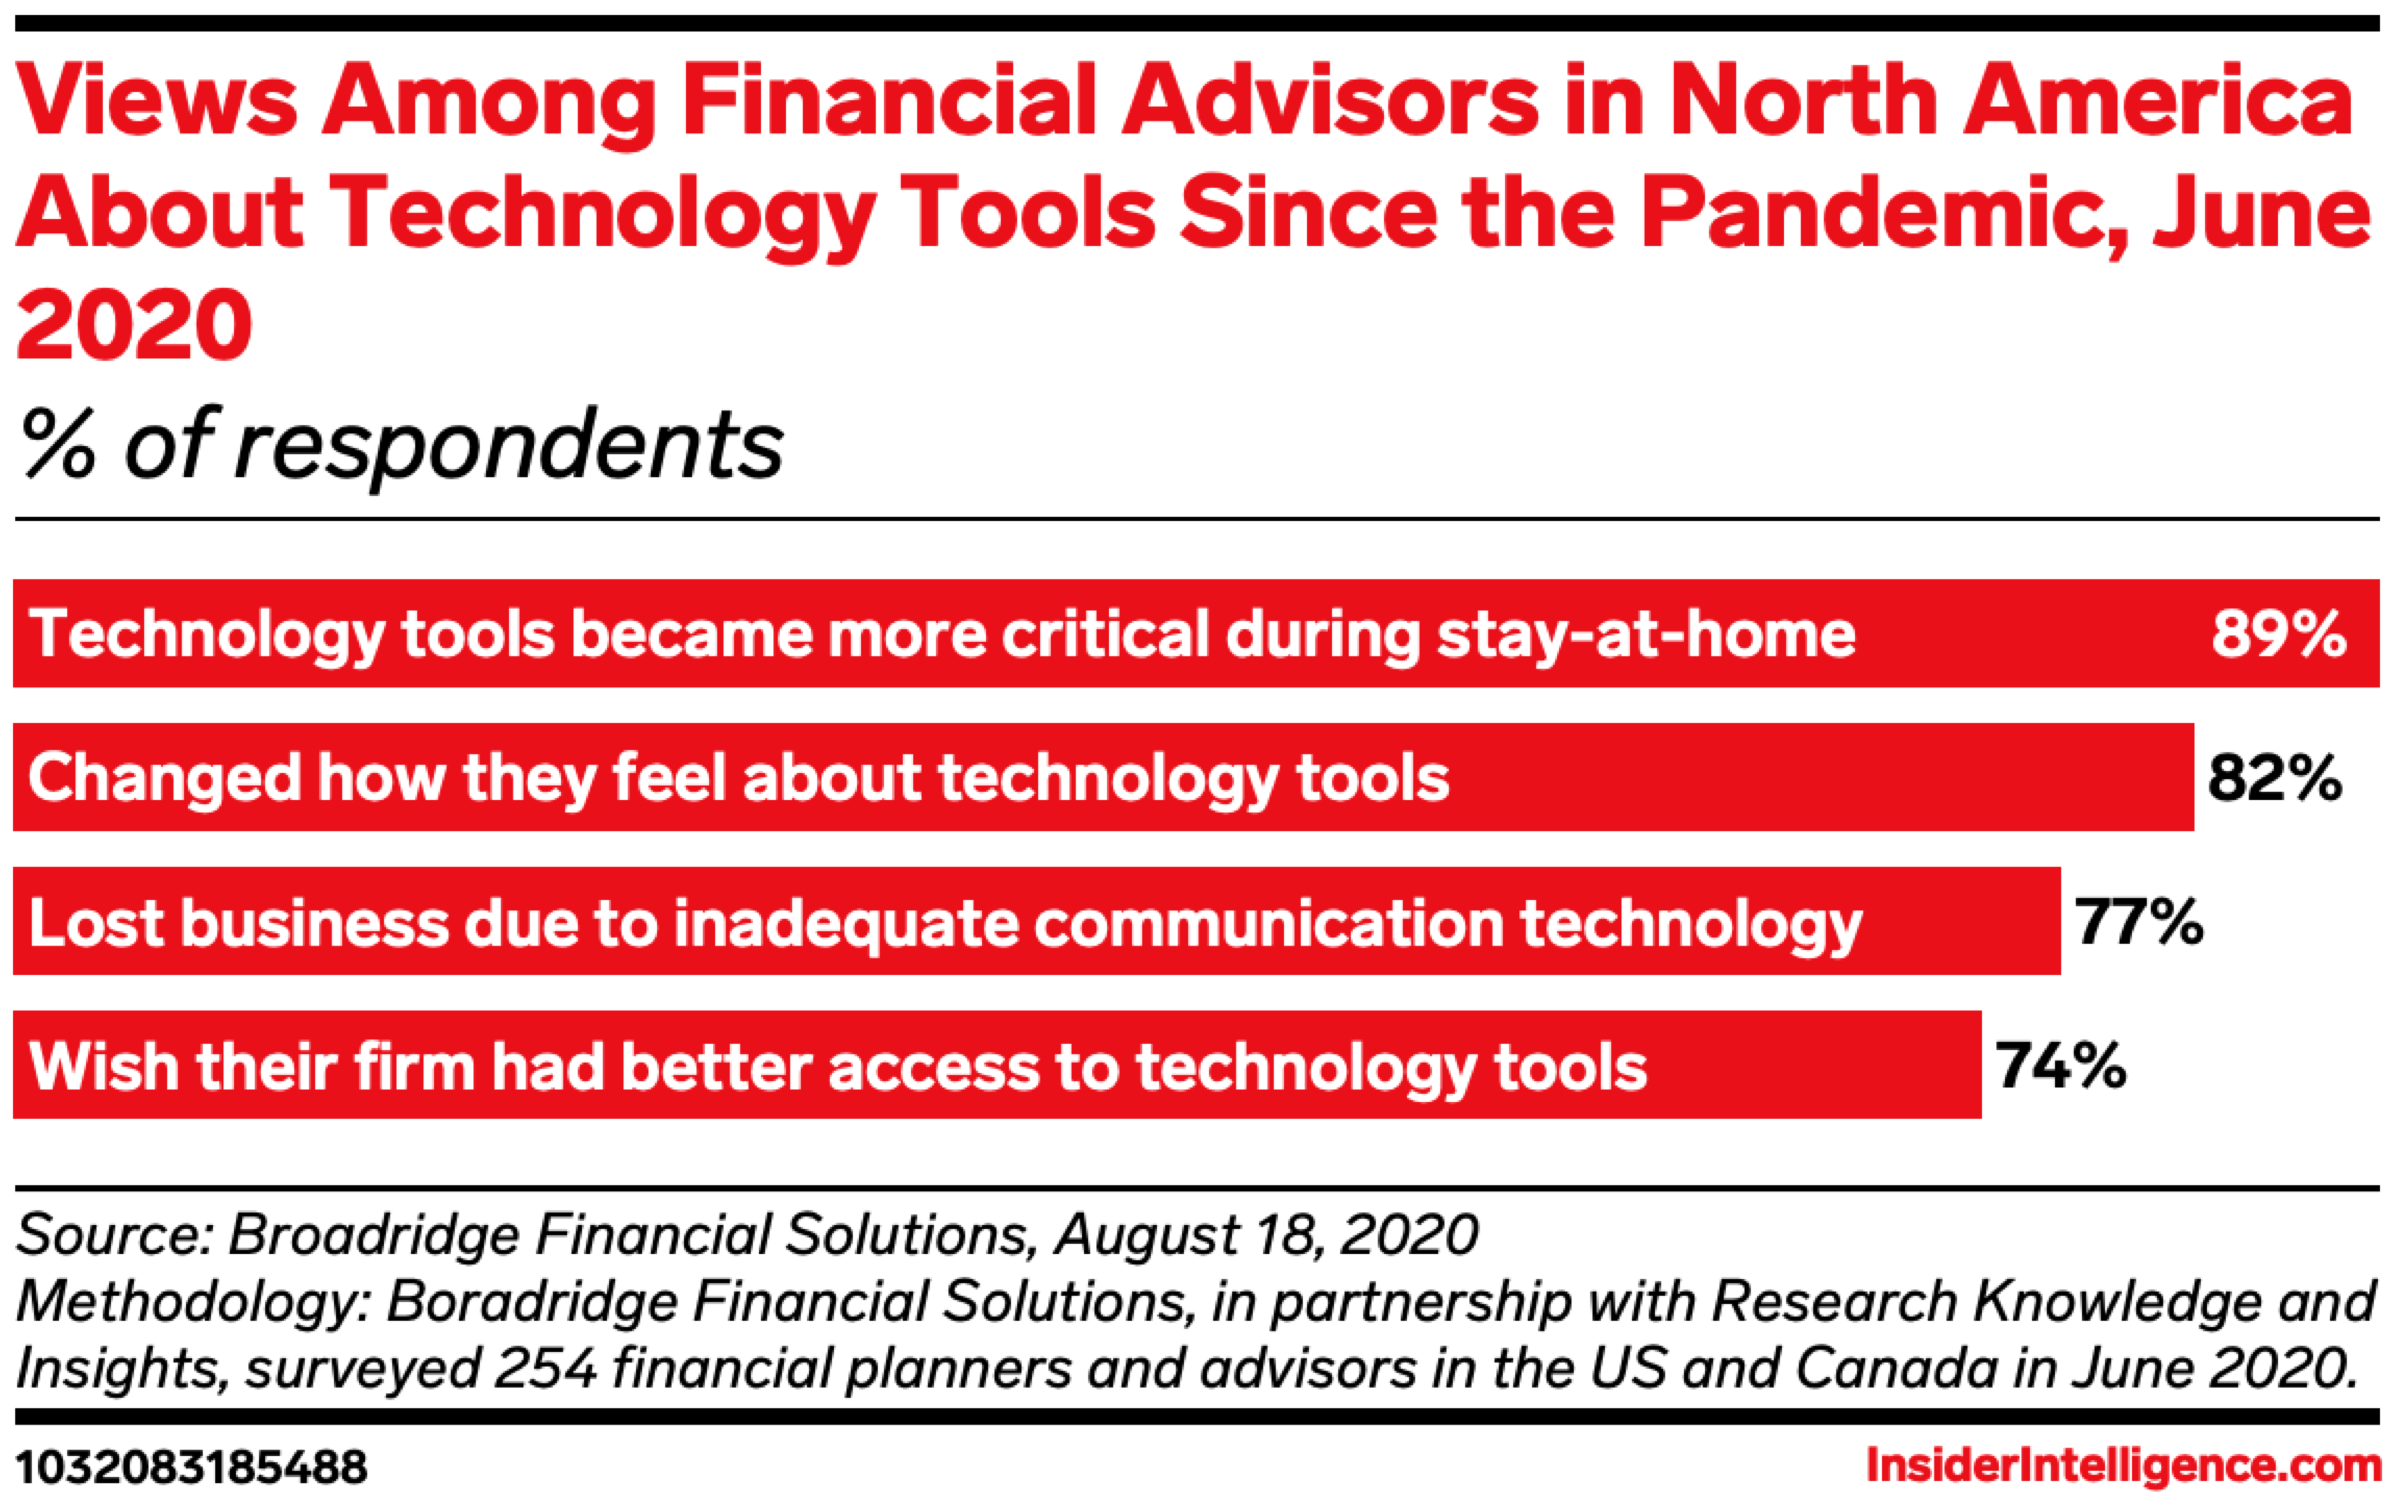 Views Among Financial Advisors in North America About Technology Tools Since the Pandemic, June 2020 (% of respondents)